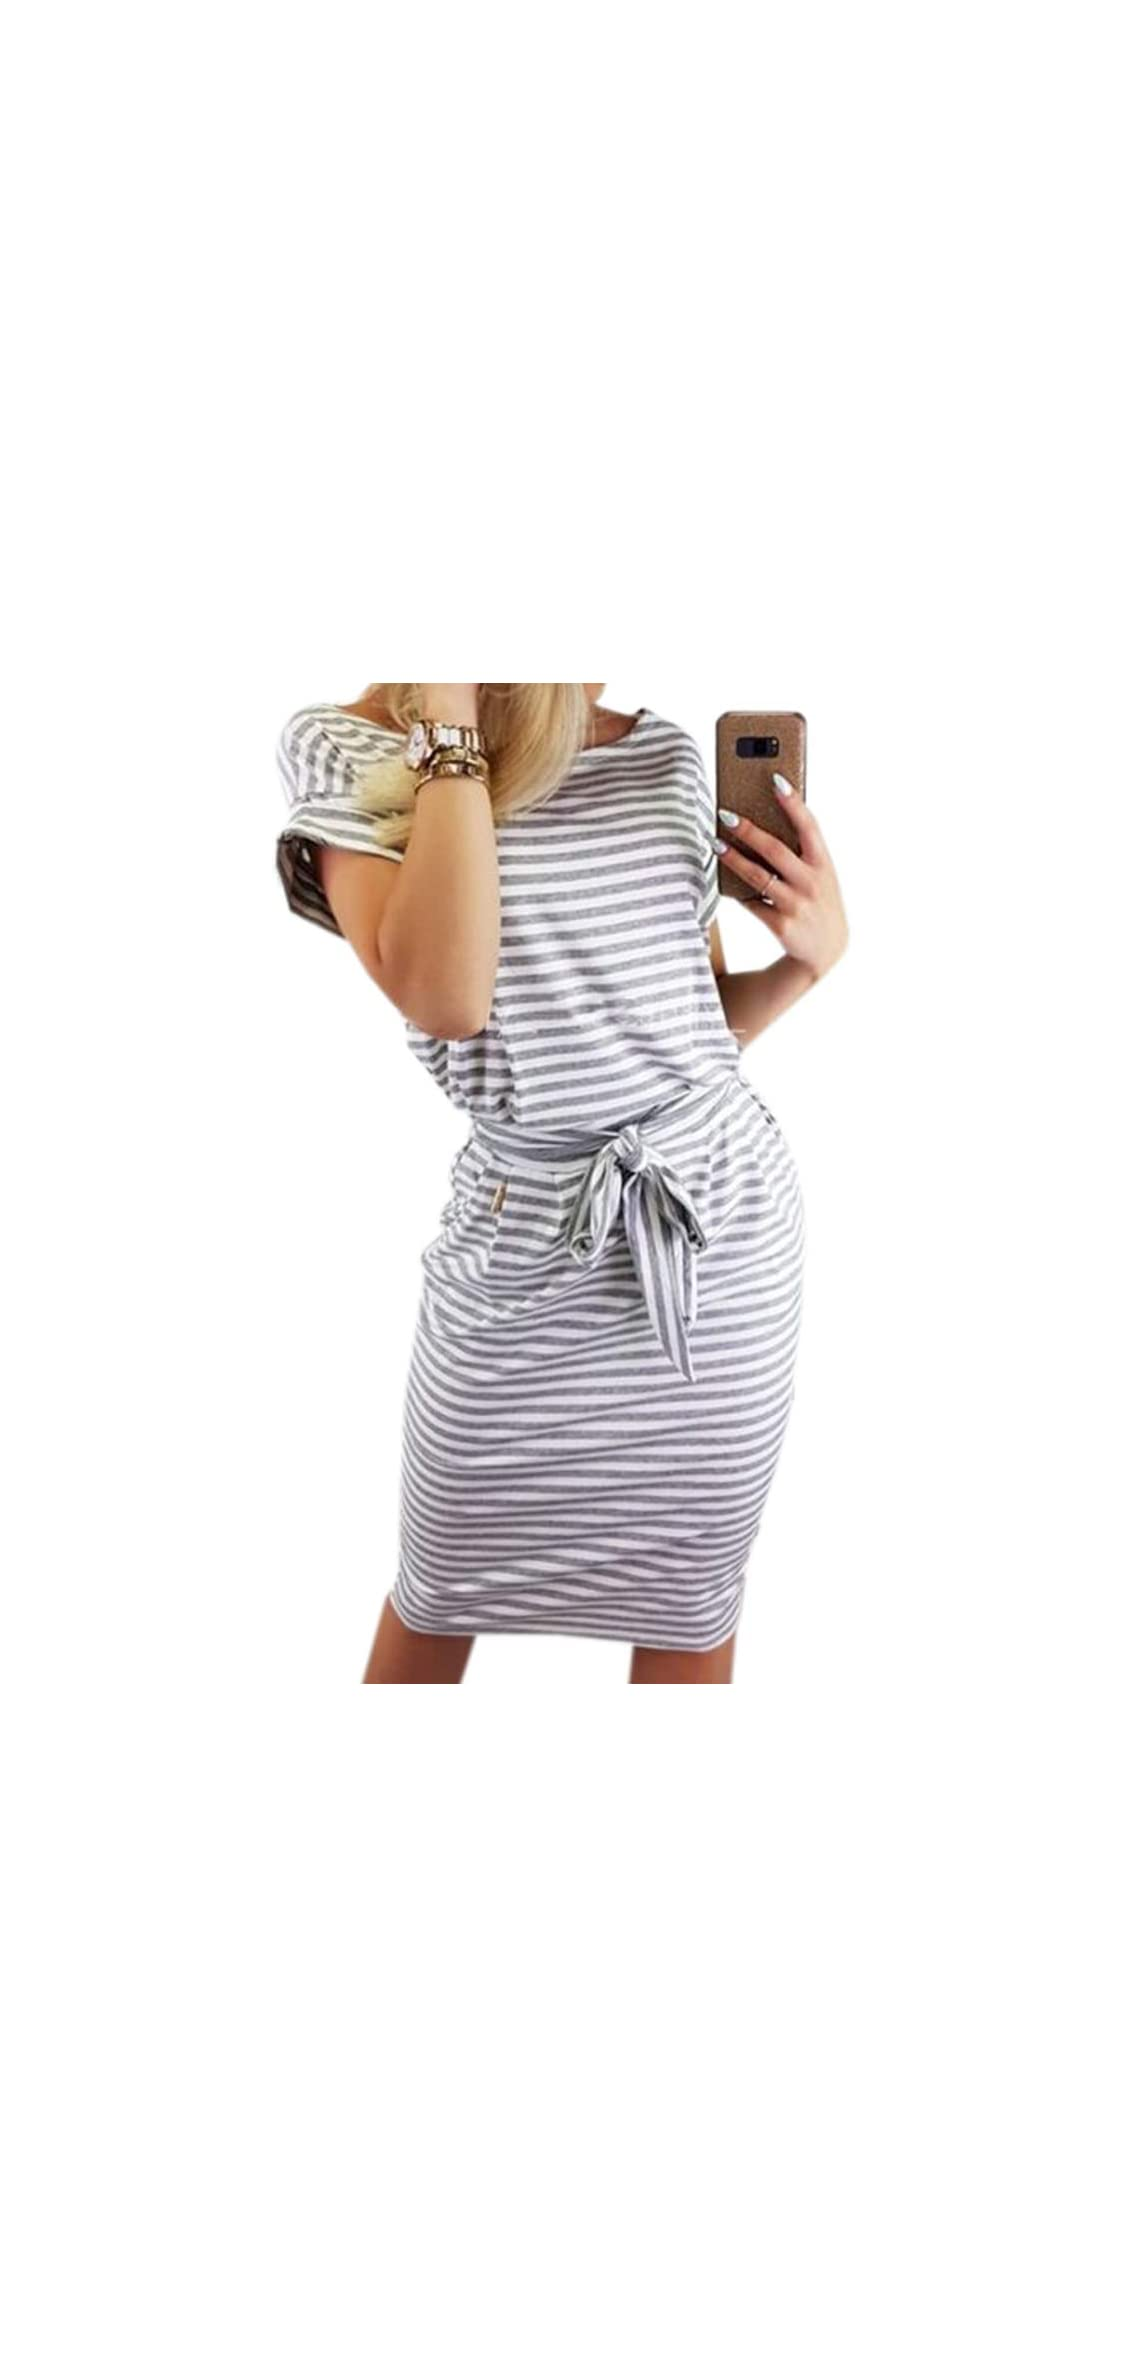 Women's Striped Elegant Short Sleeve Wear To Work Casual